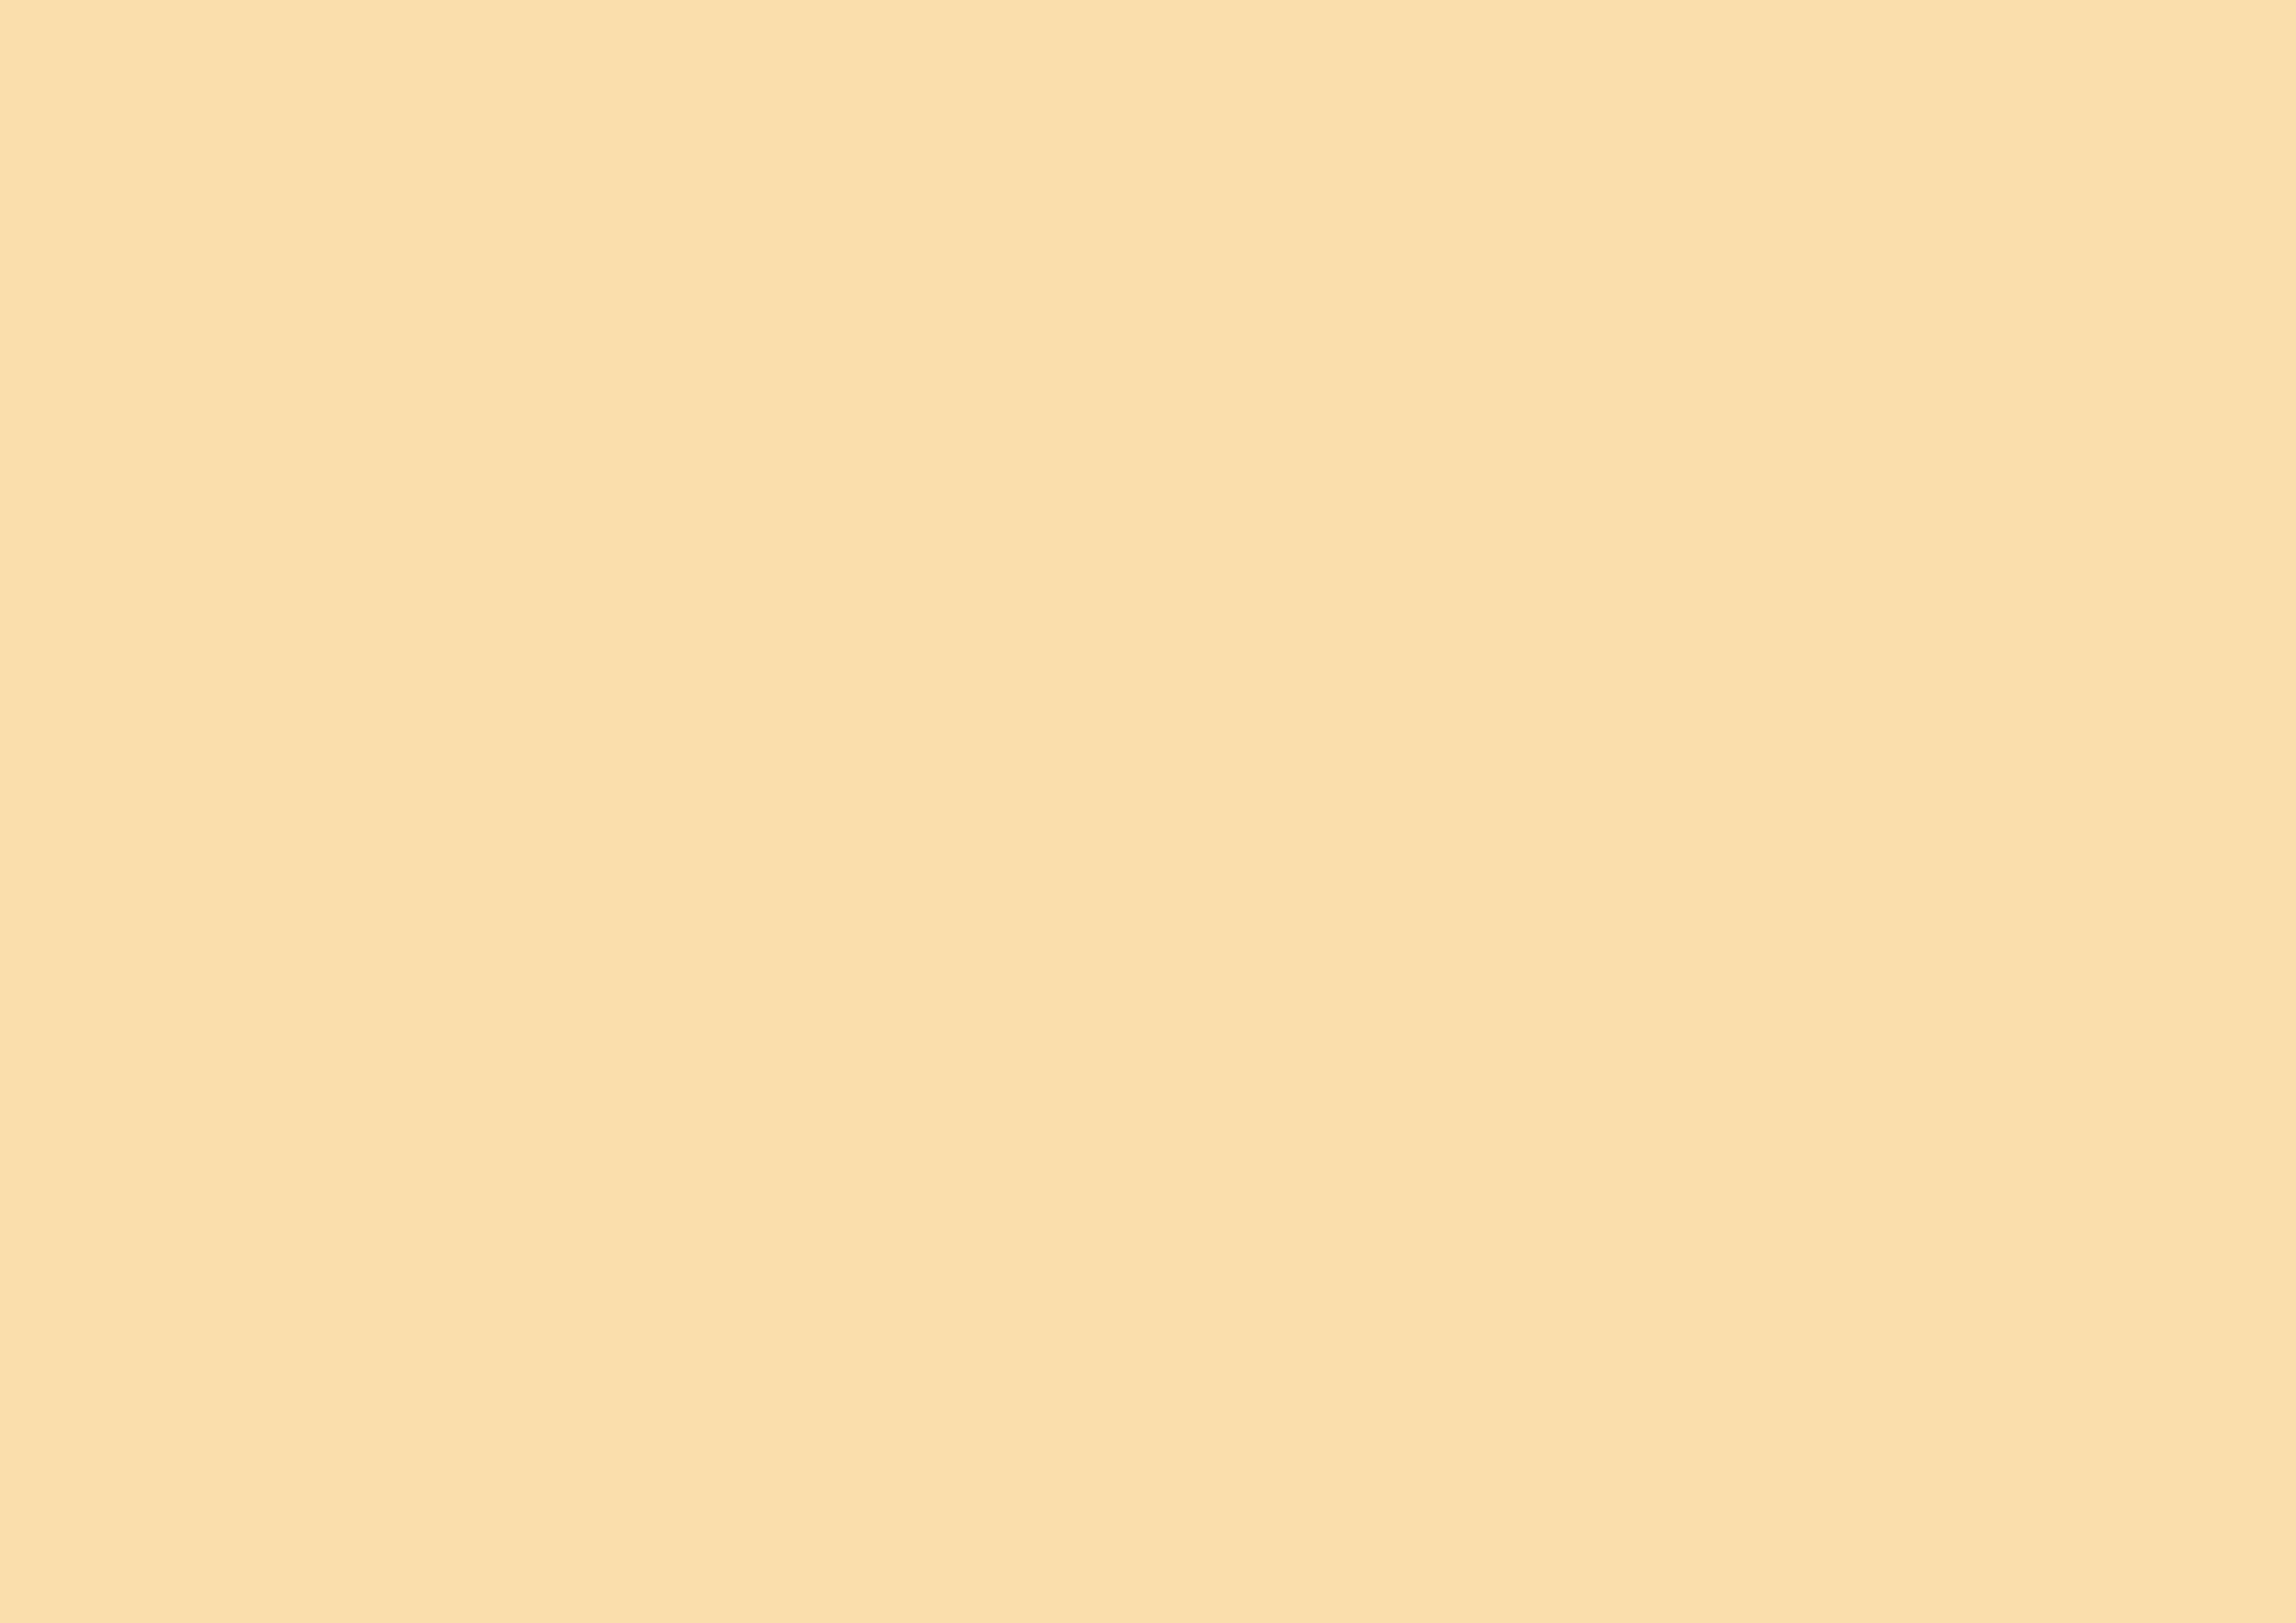 3508x2480 Peach-yellow Solid Color Background